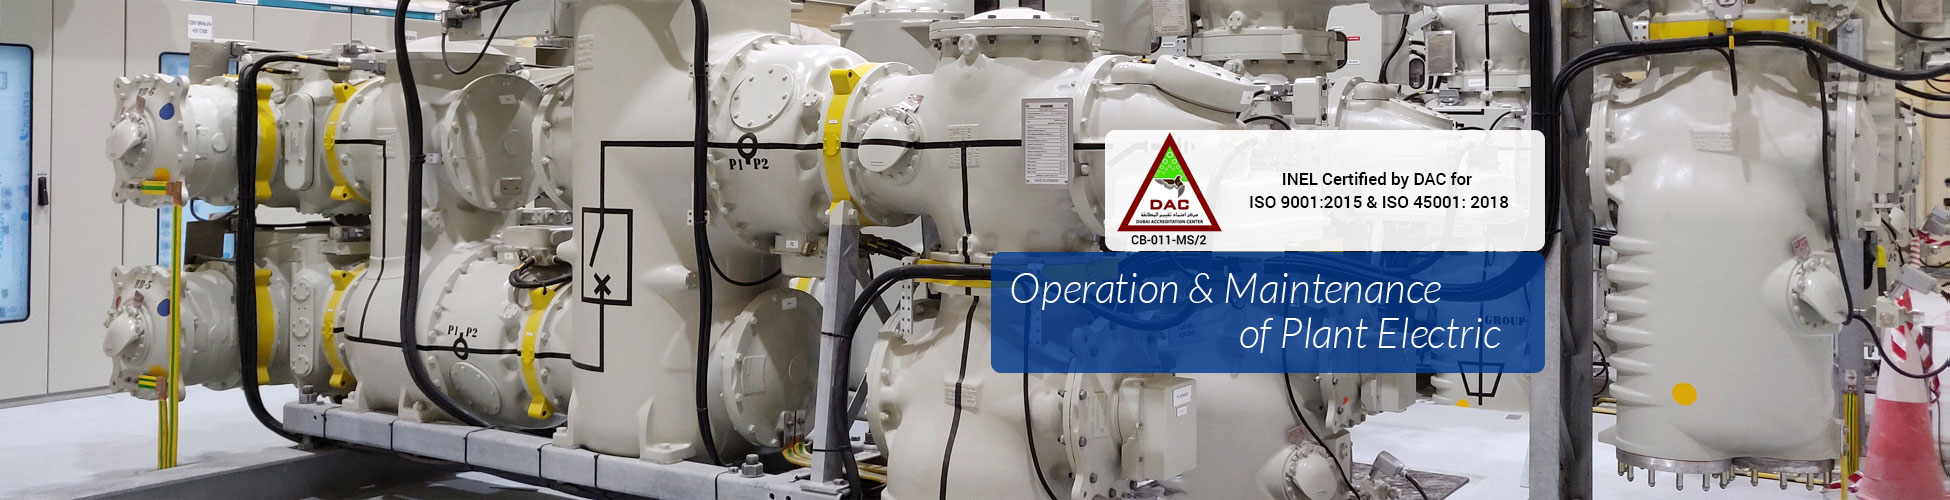 Inel Power Electromechanical L L C Electrical Engineers Consultants Contractors